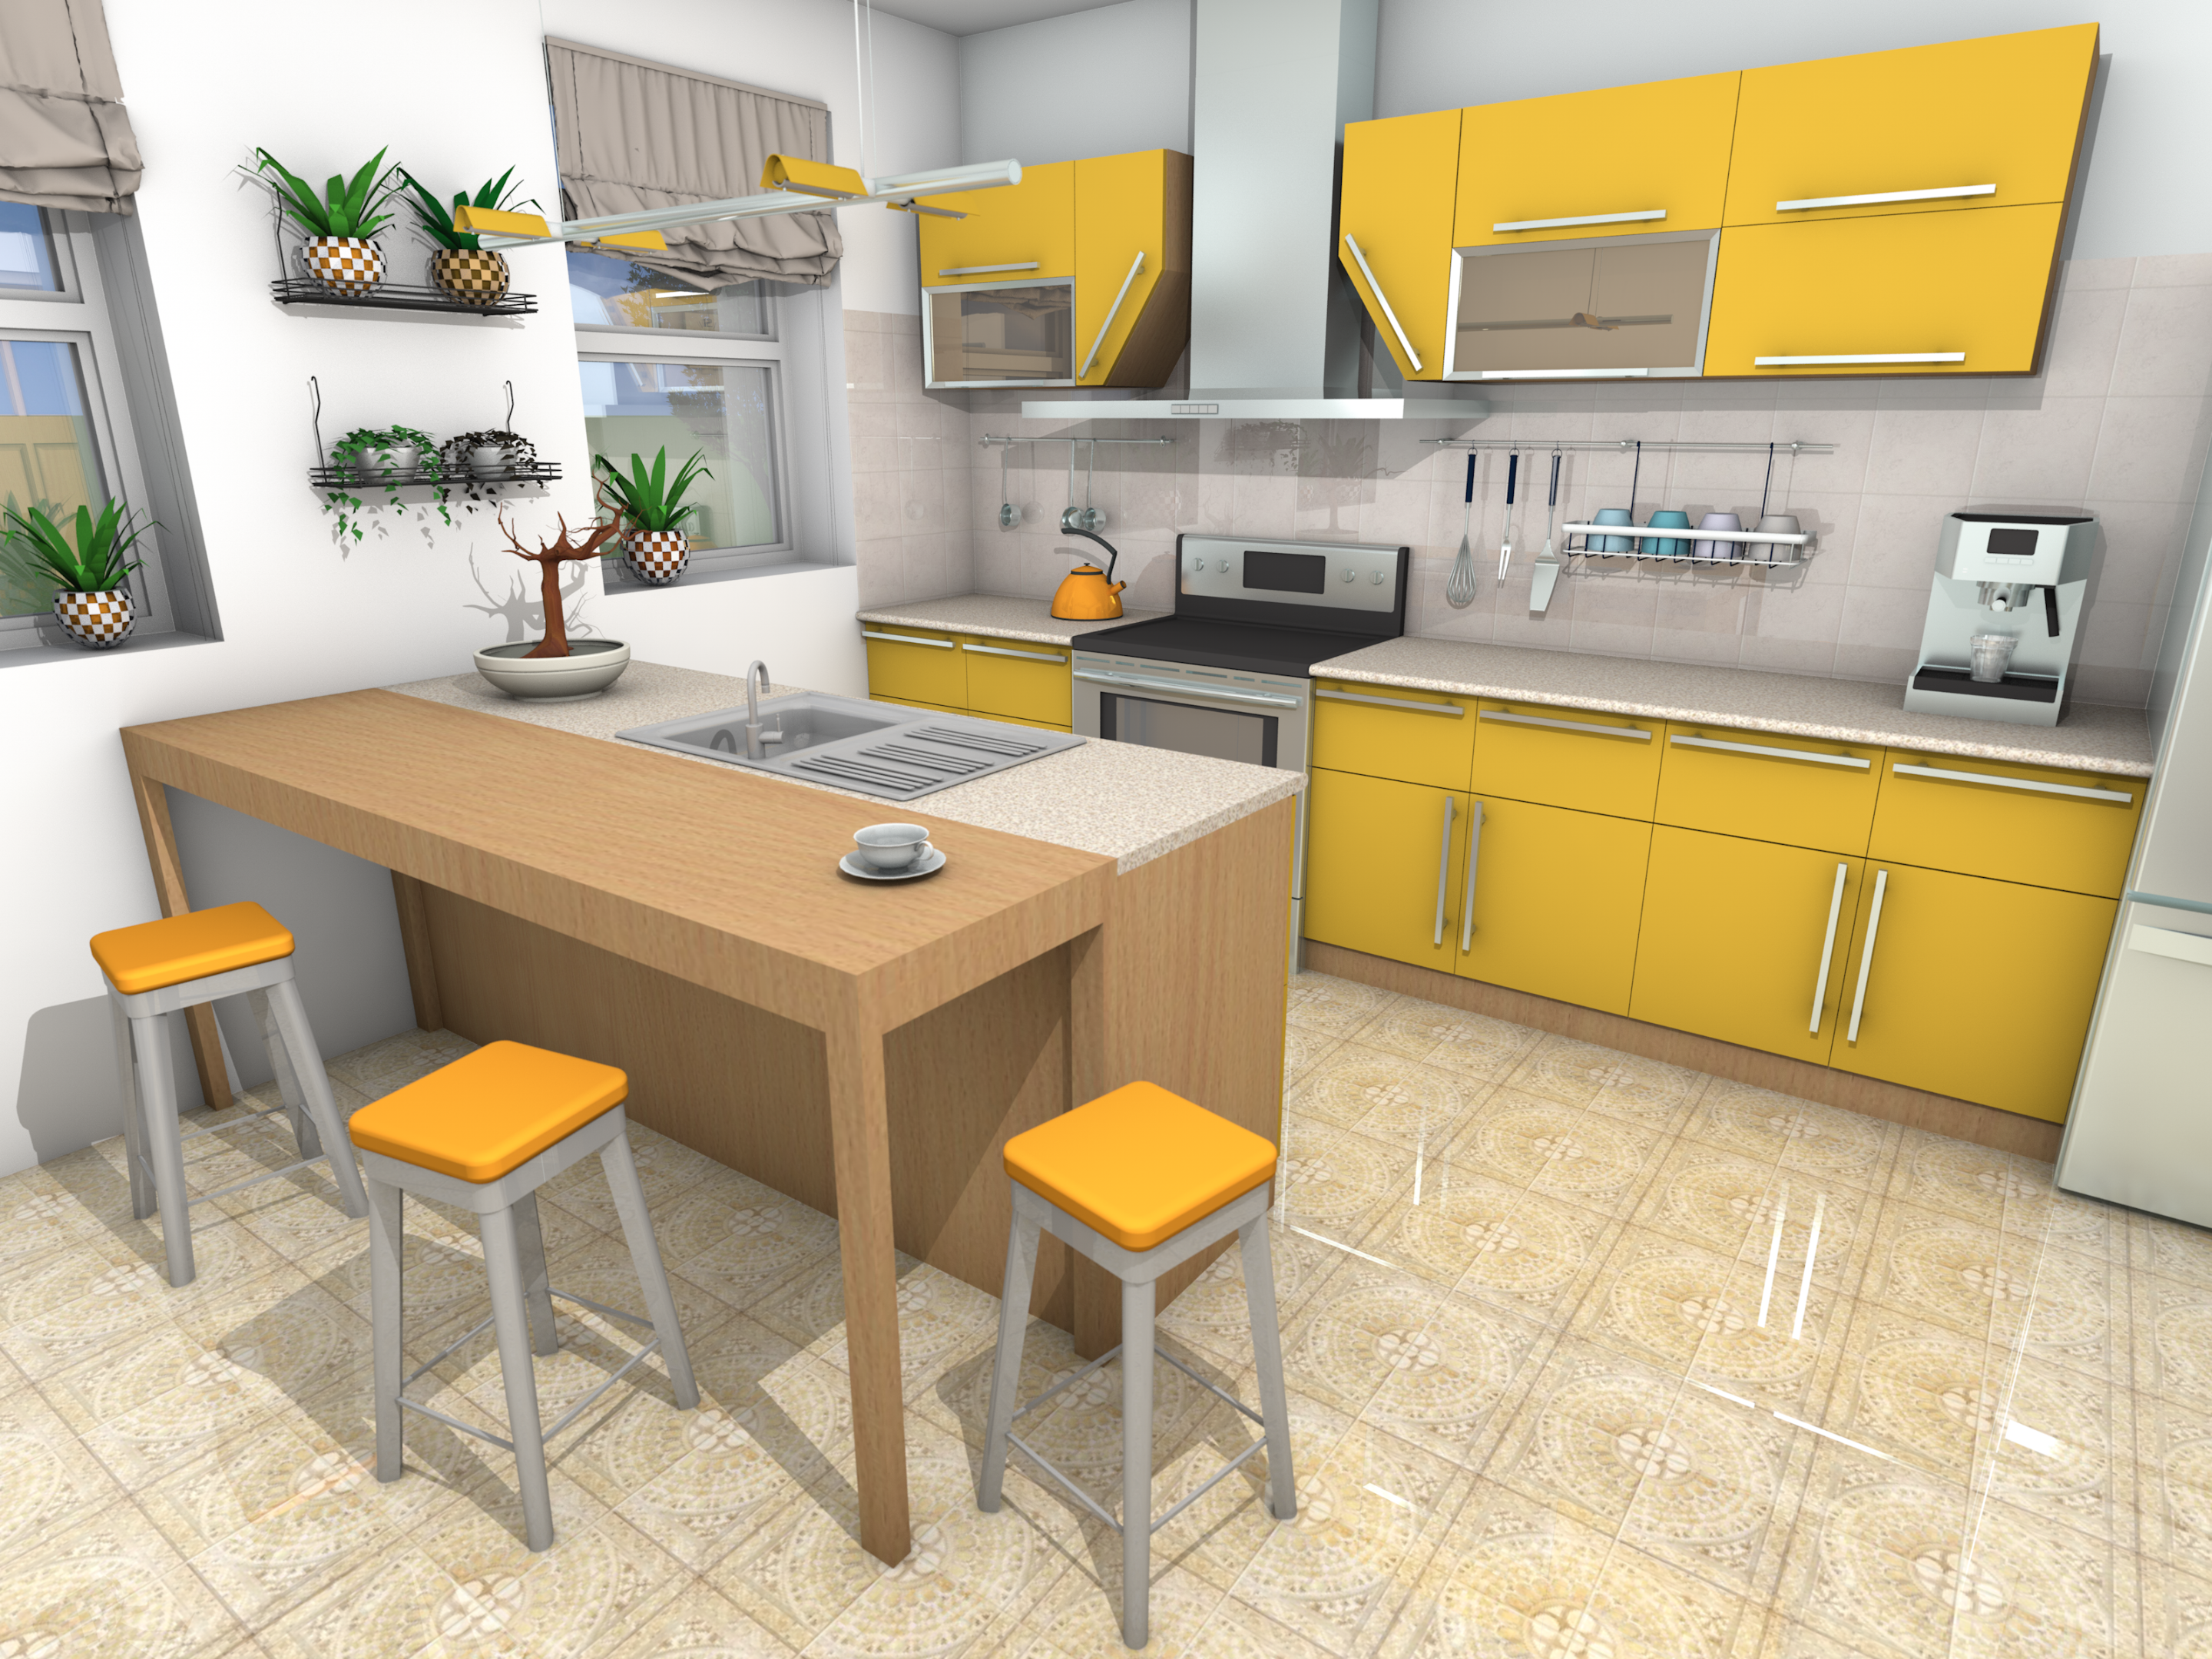 Create The Home Of Your Dreams Easy With Livehome3d You Have